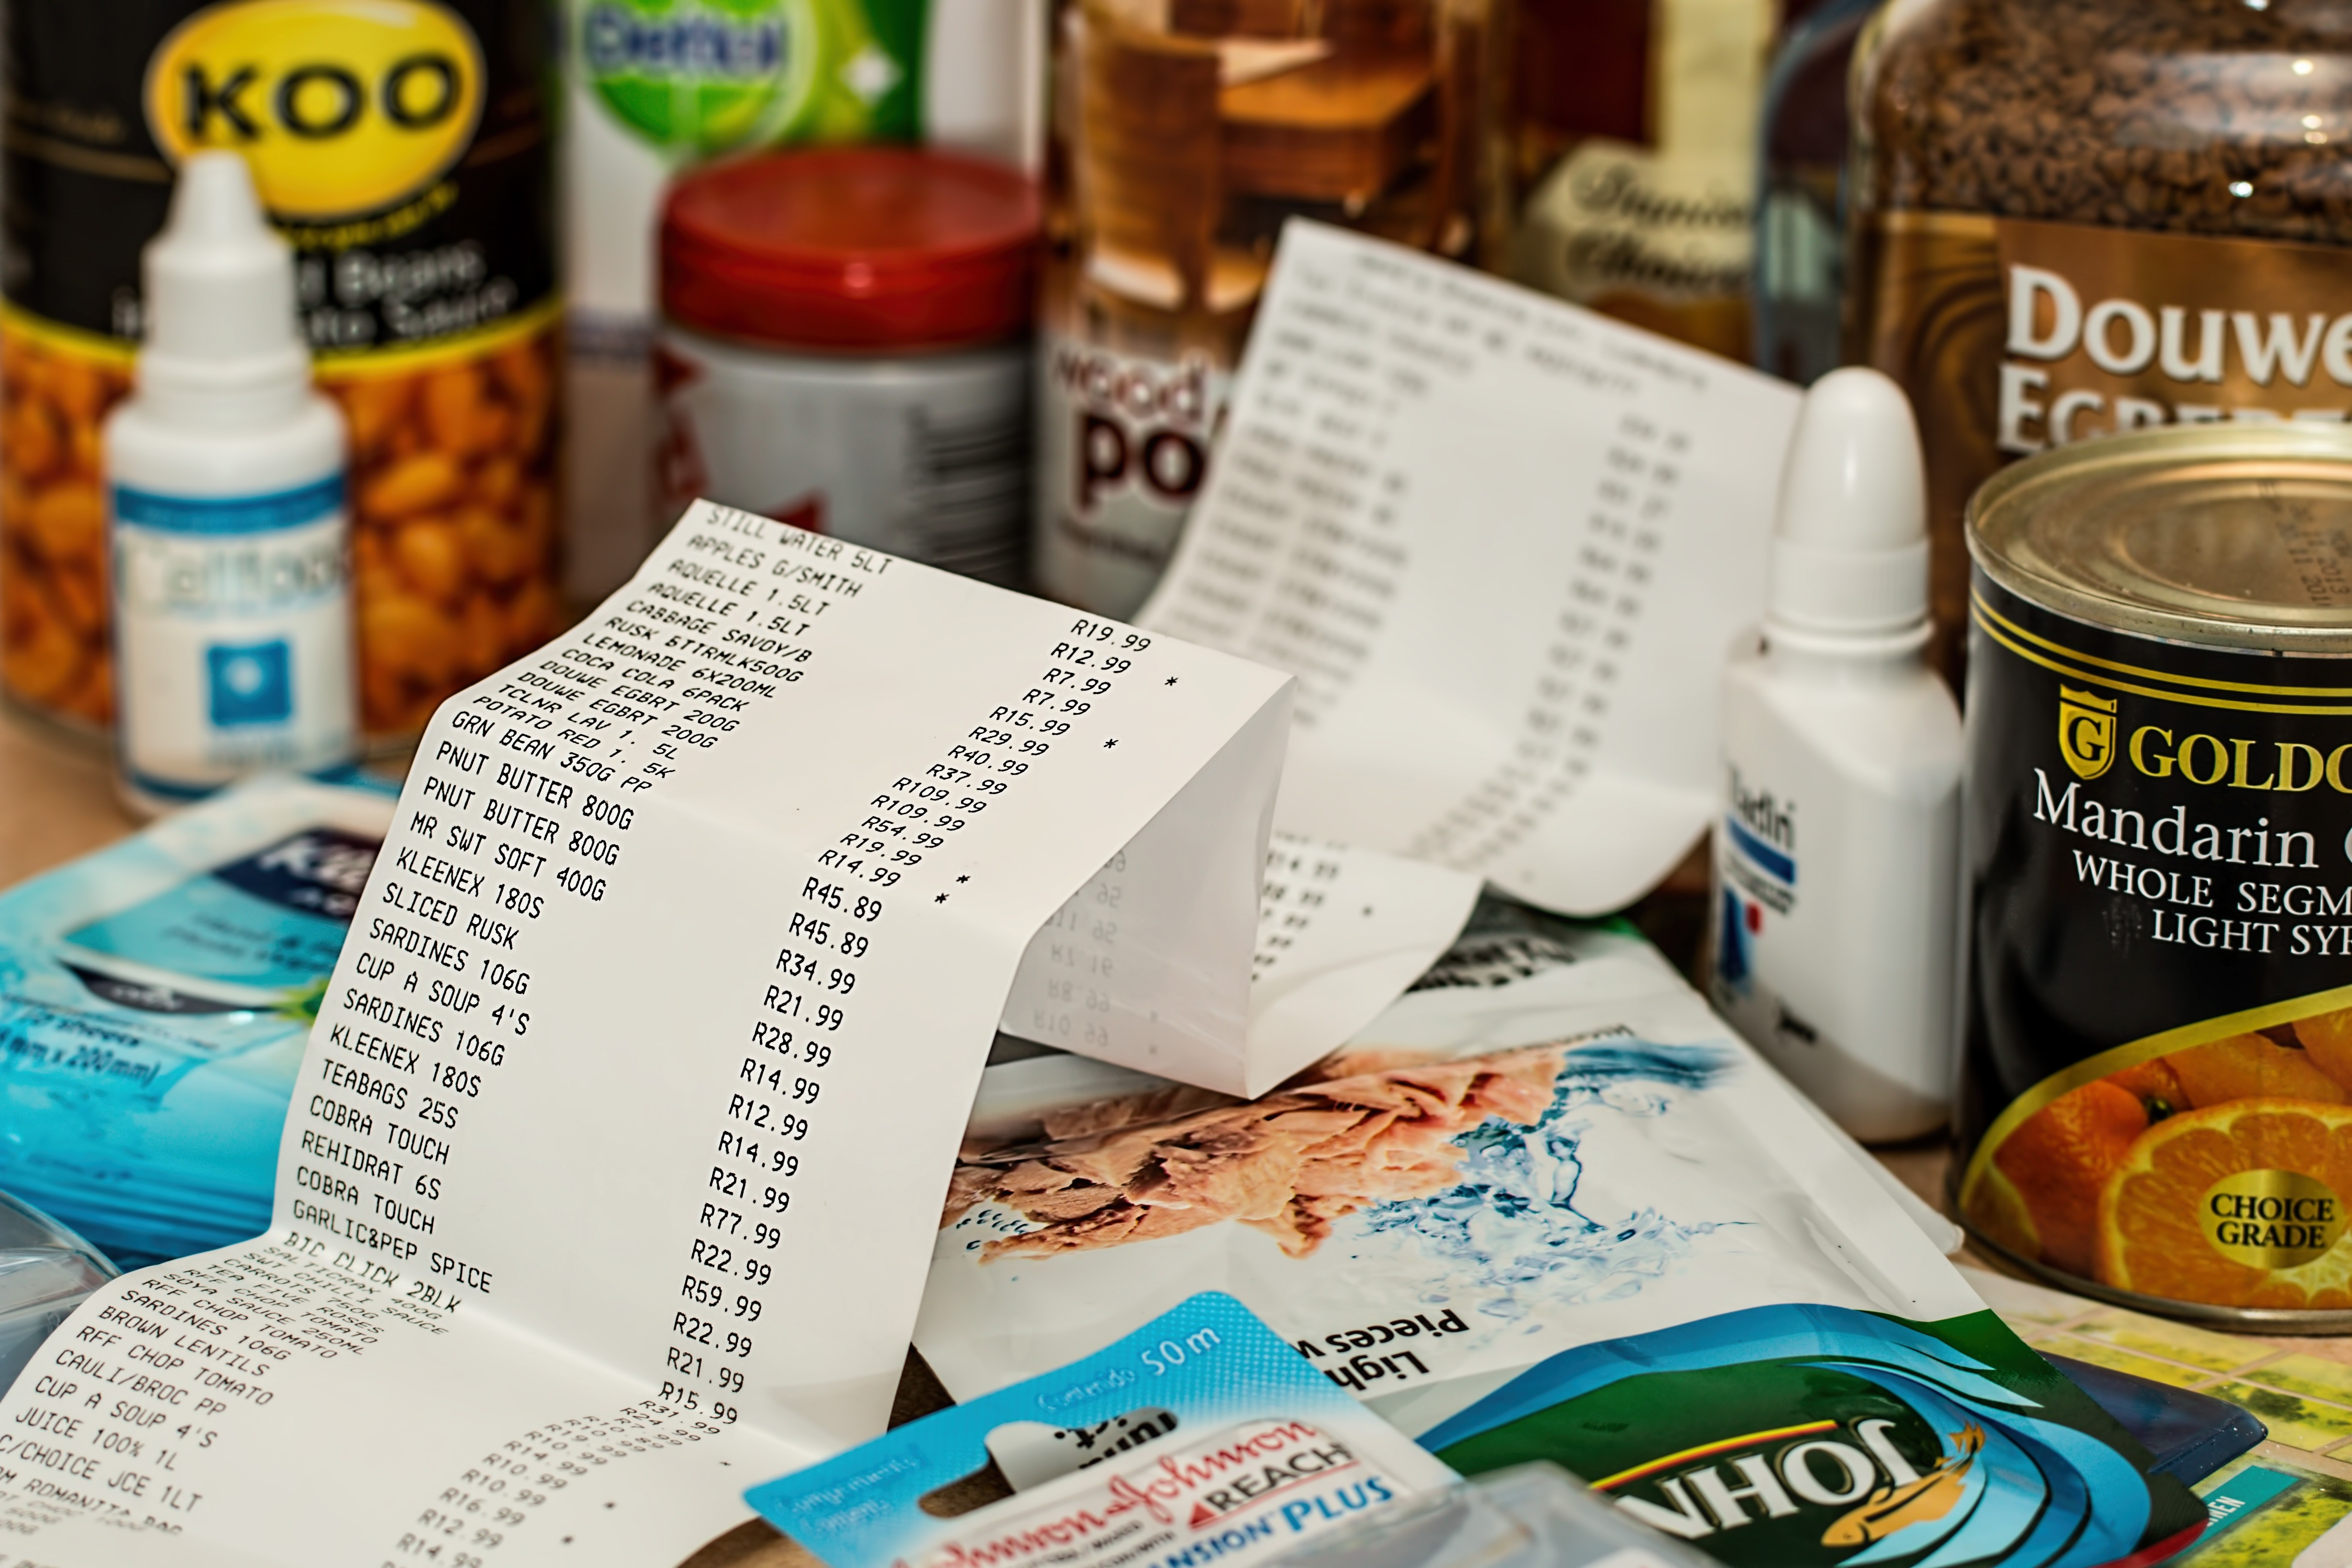 a shopping receipt scrunched up on a side along with some groceries